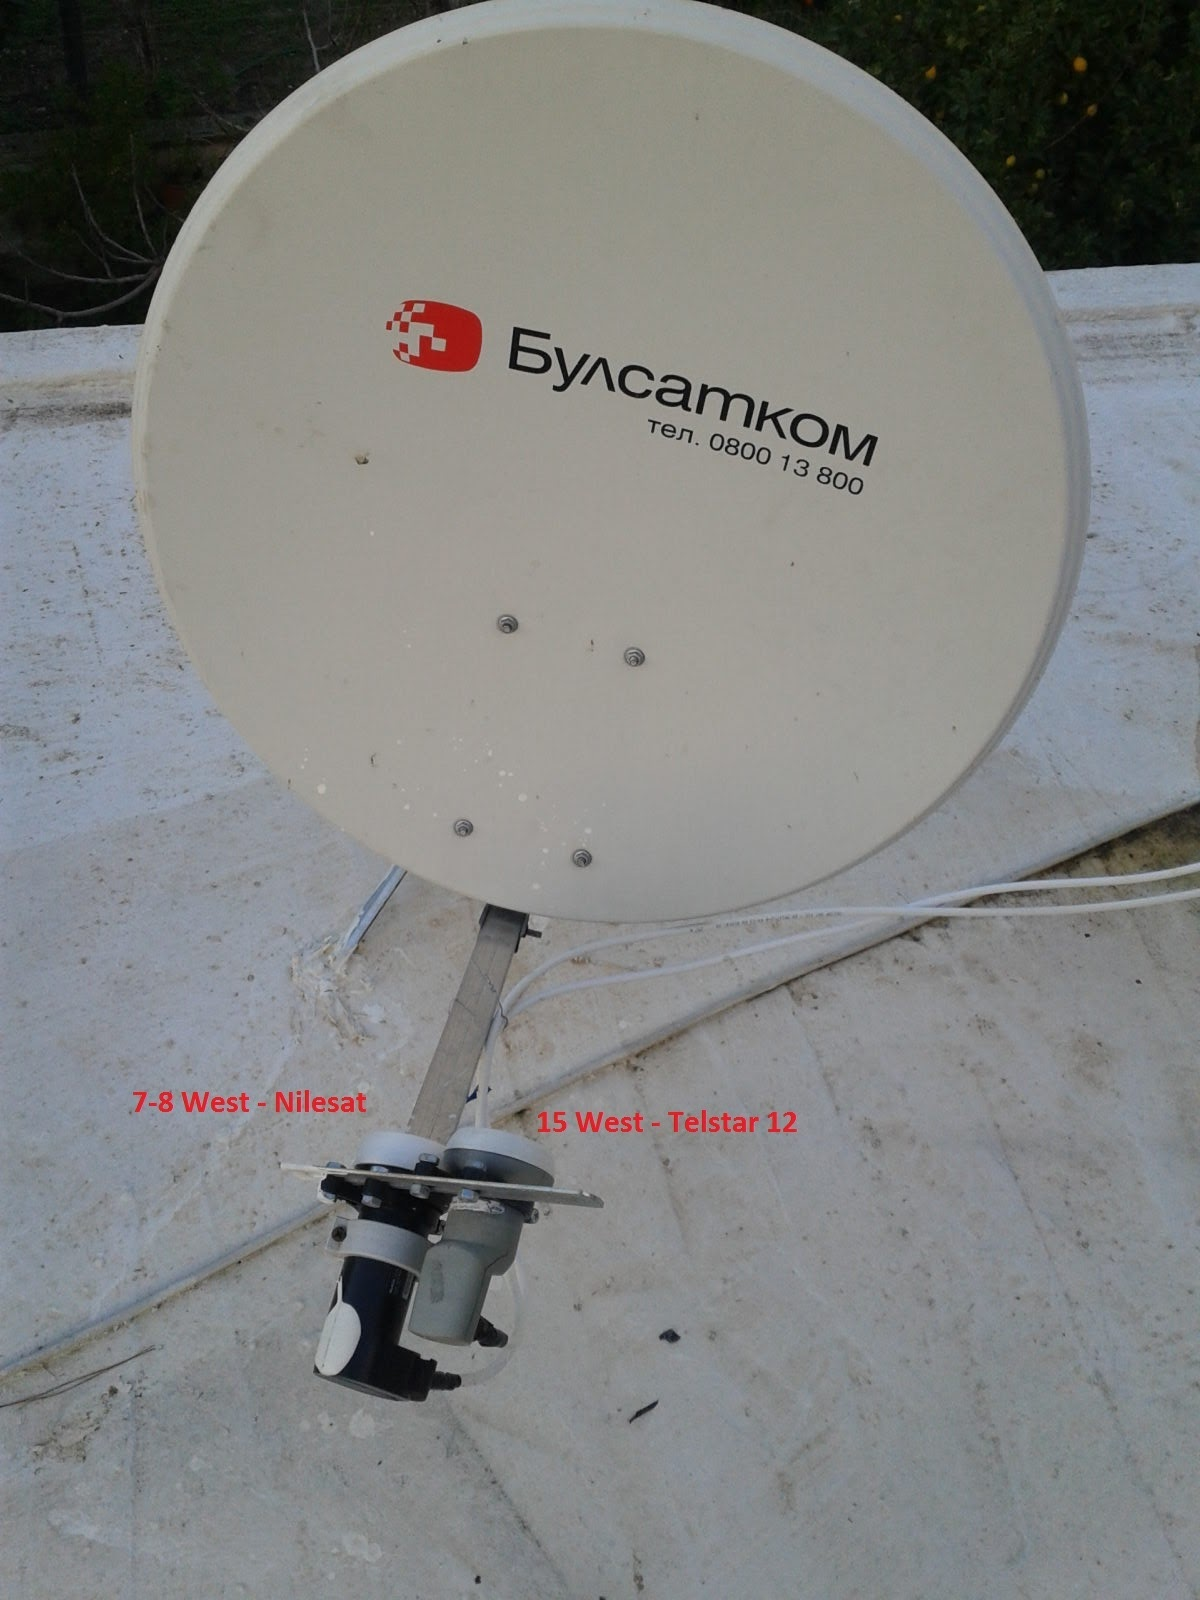 80cm old Bulgarian dish targeting Nilesat on 7-8* West. The second lnb targets 15 West.